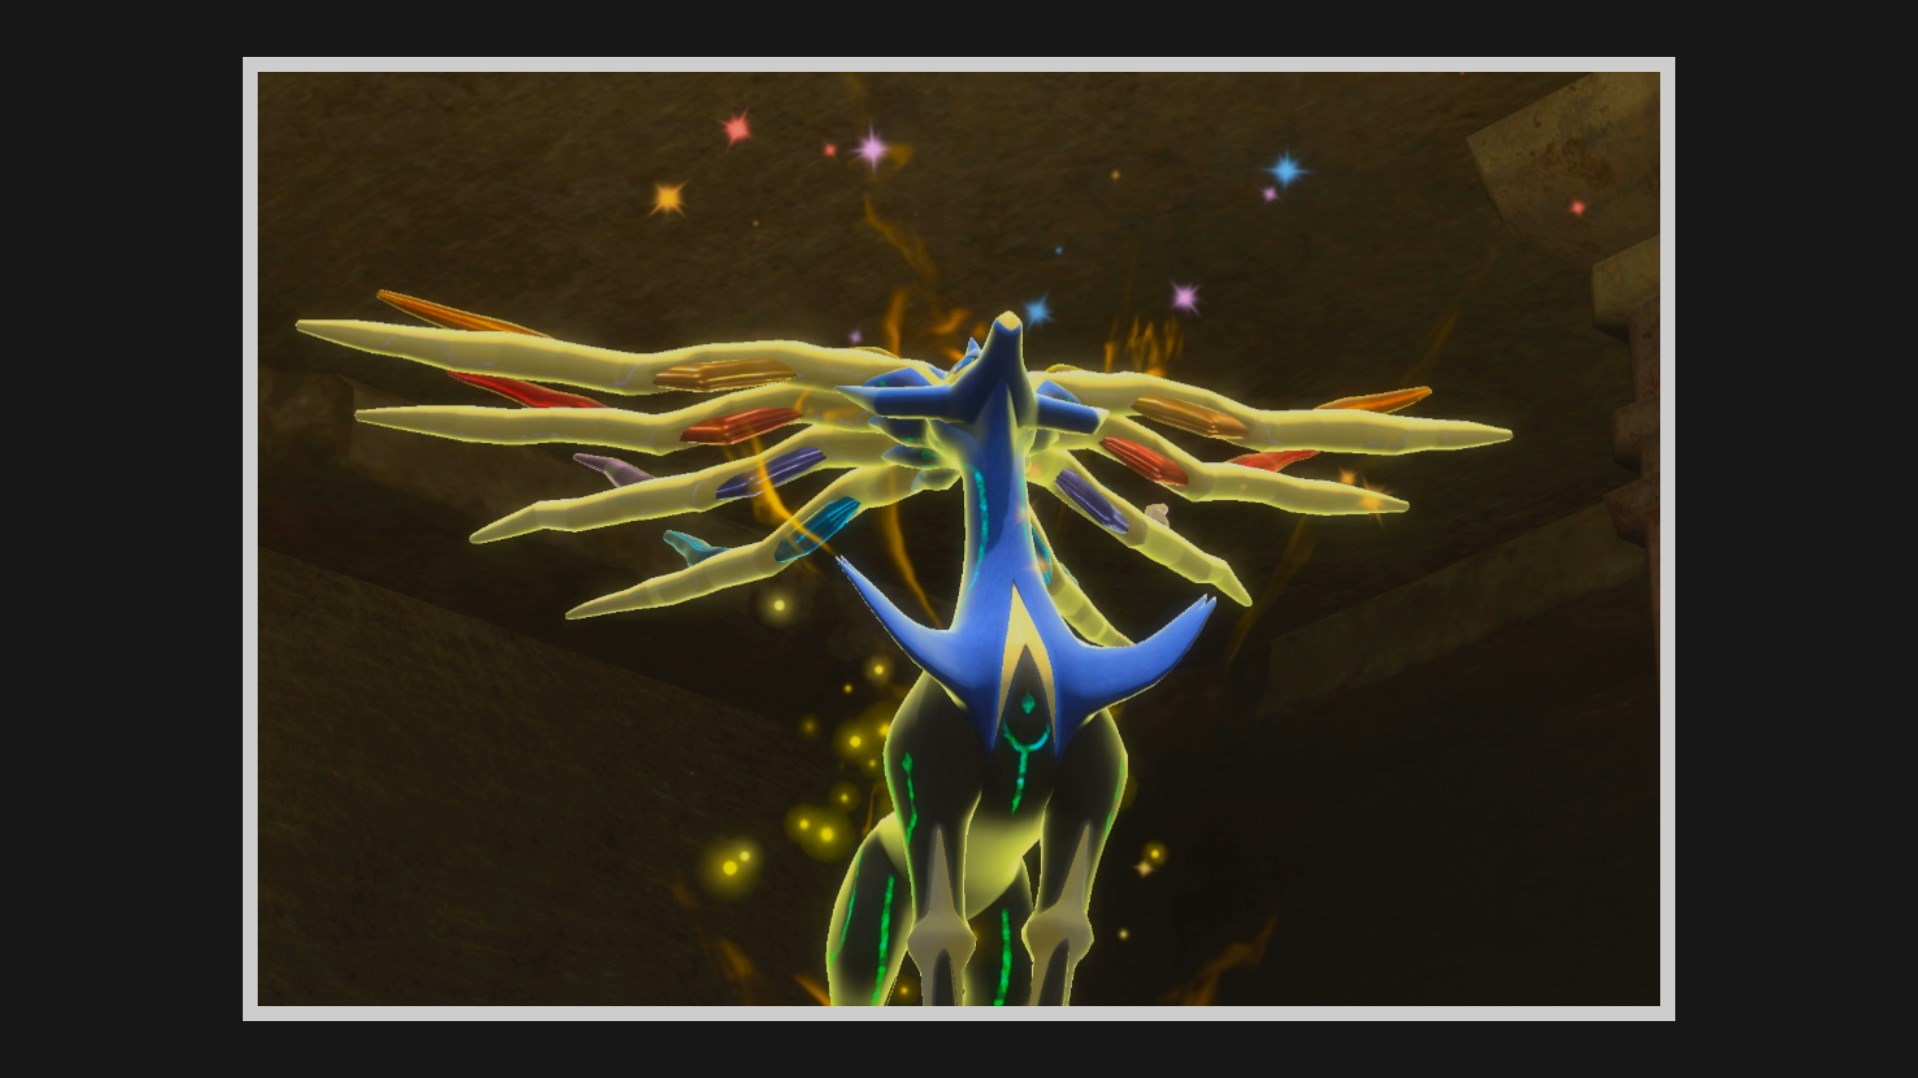 Xerneas looks up at the sky while it has a golden glow